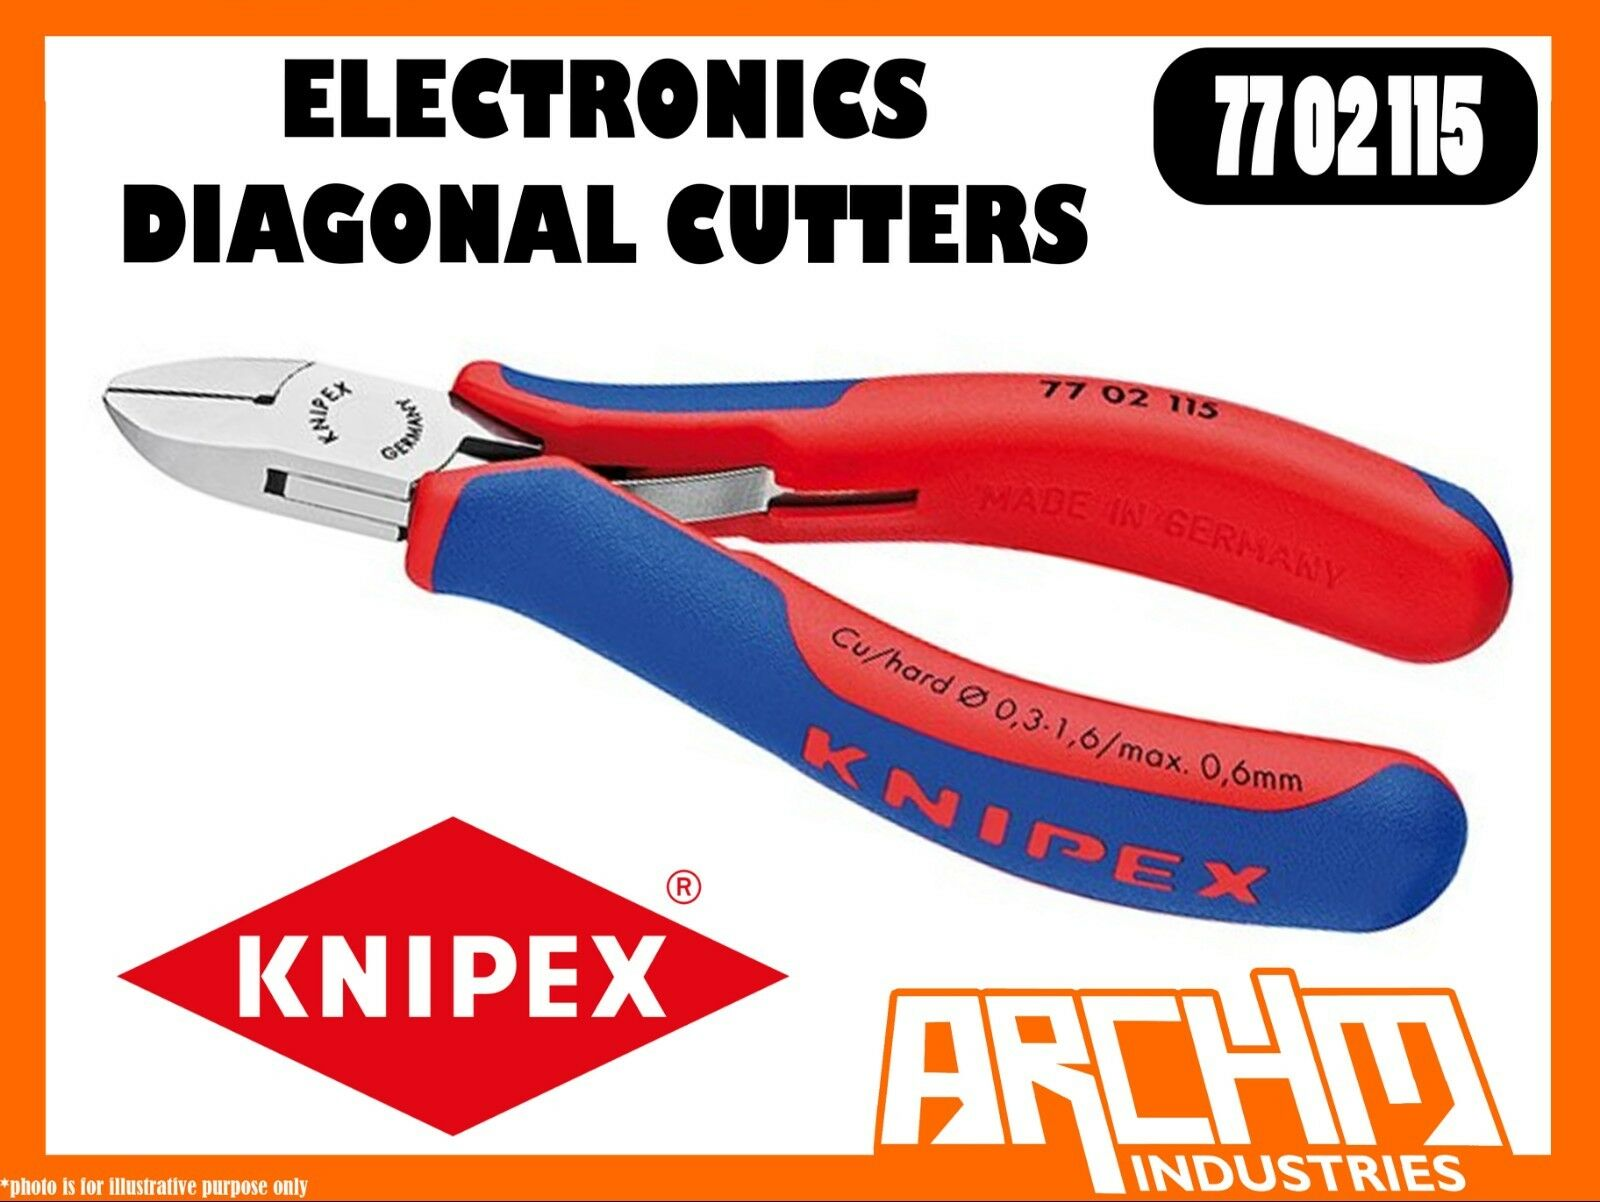 KNIPEX 7702115 - ELECTRONICS DIAGONAL CUTTERS - 115MM - PLIERS CUTTING POLISHED